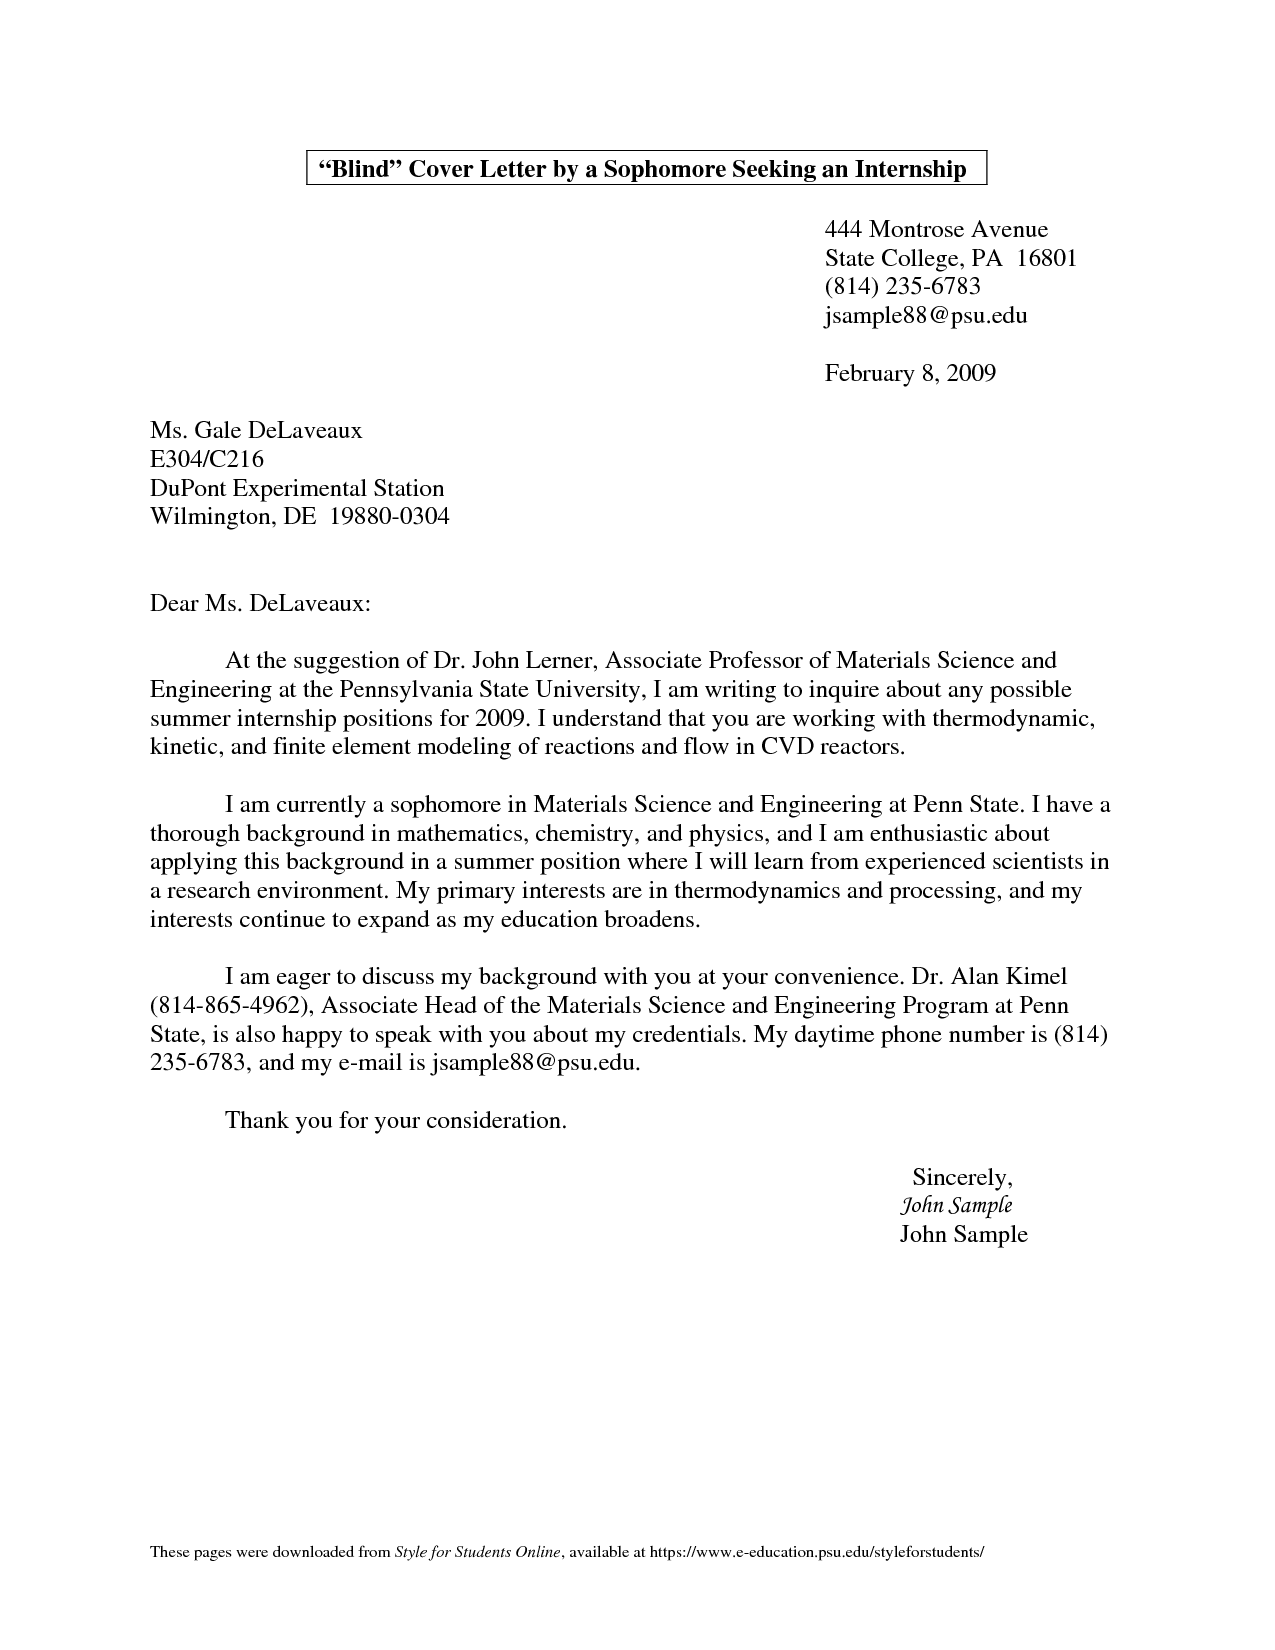 Example Of College Cover Letter For Internship